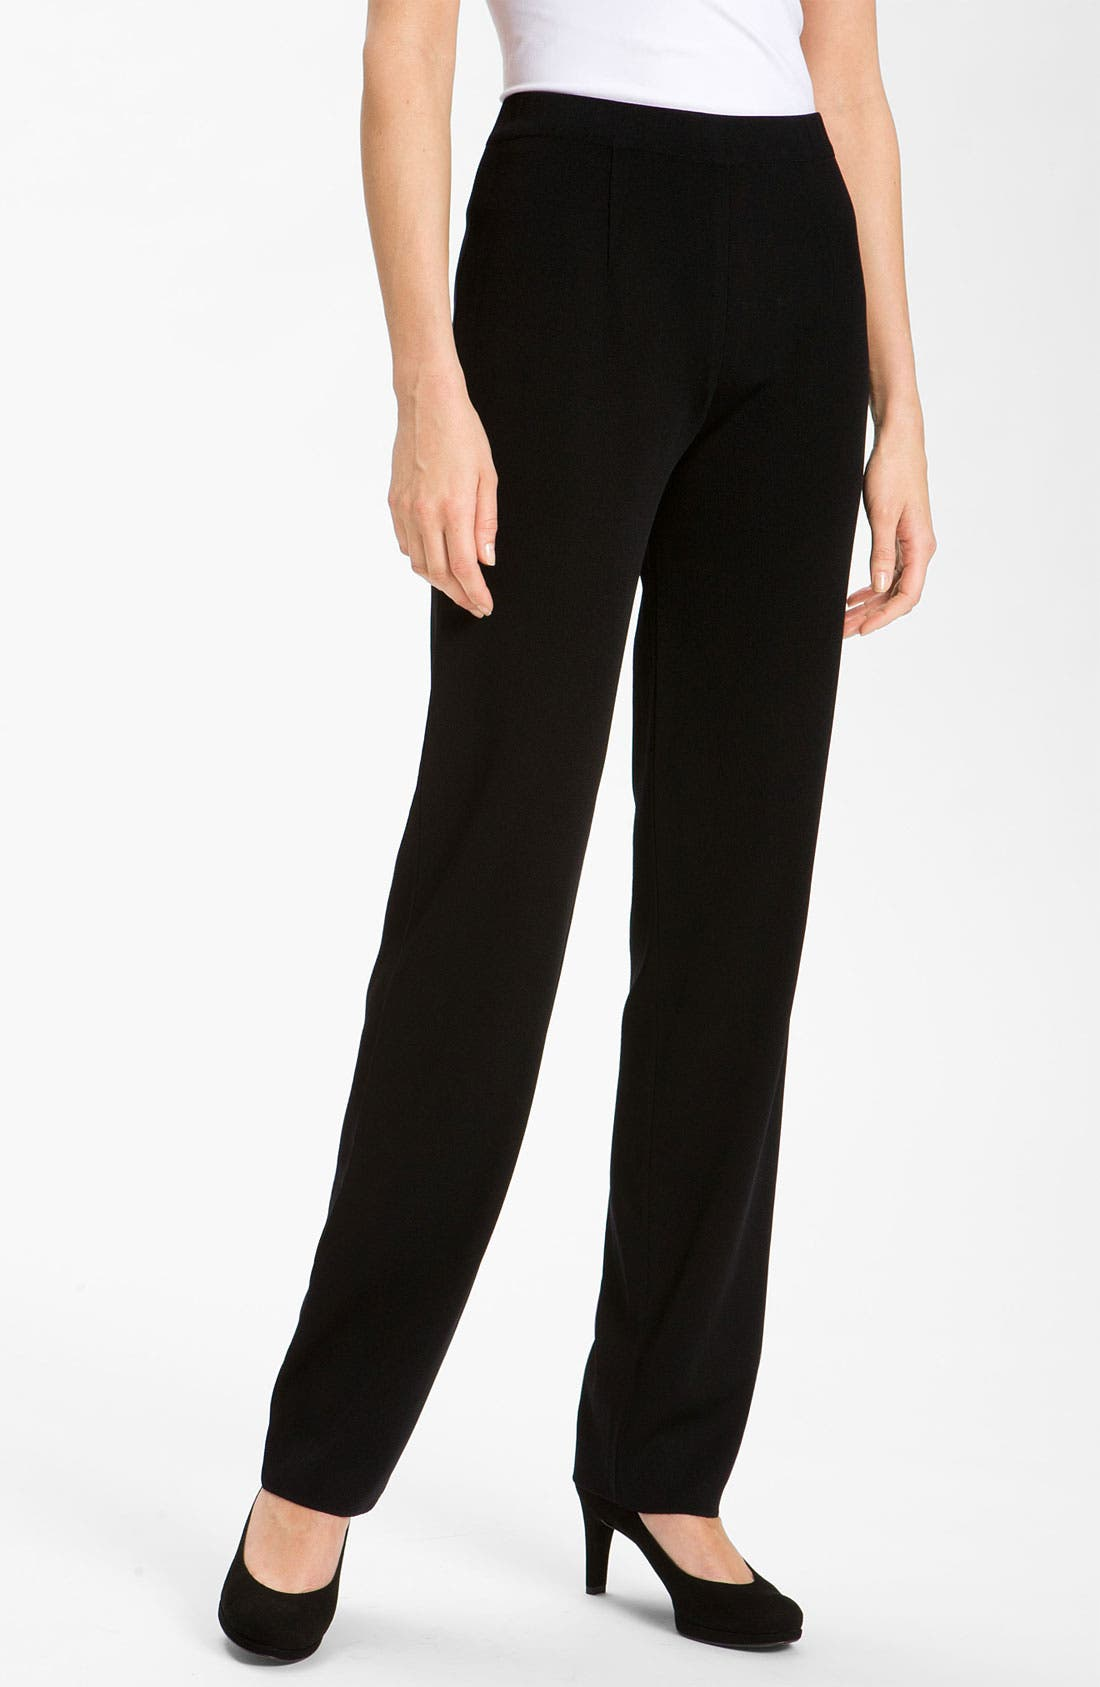 Alternate Image 1 Selected - Misook Slim Knit Pants (Regular & Petite) (Online Only)